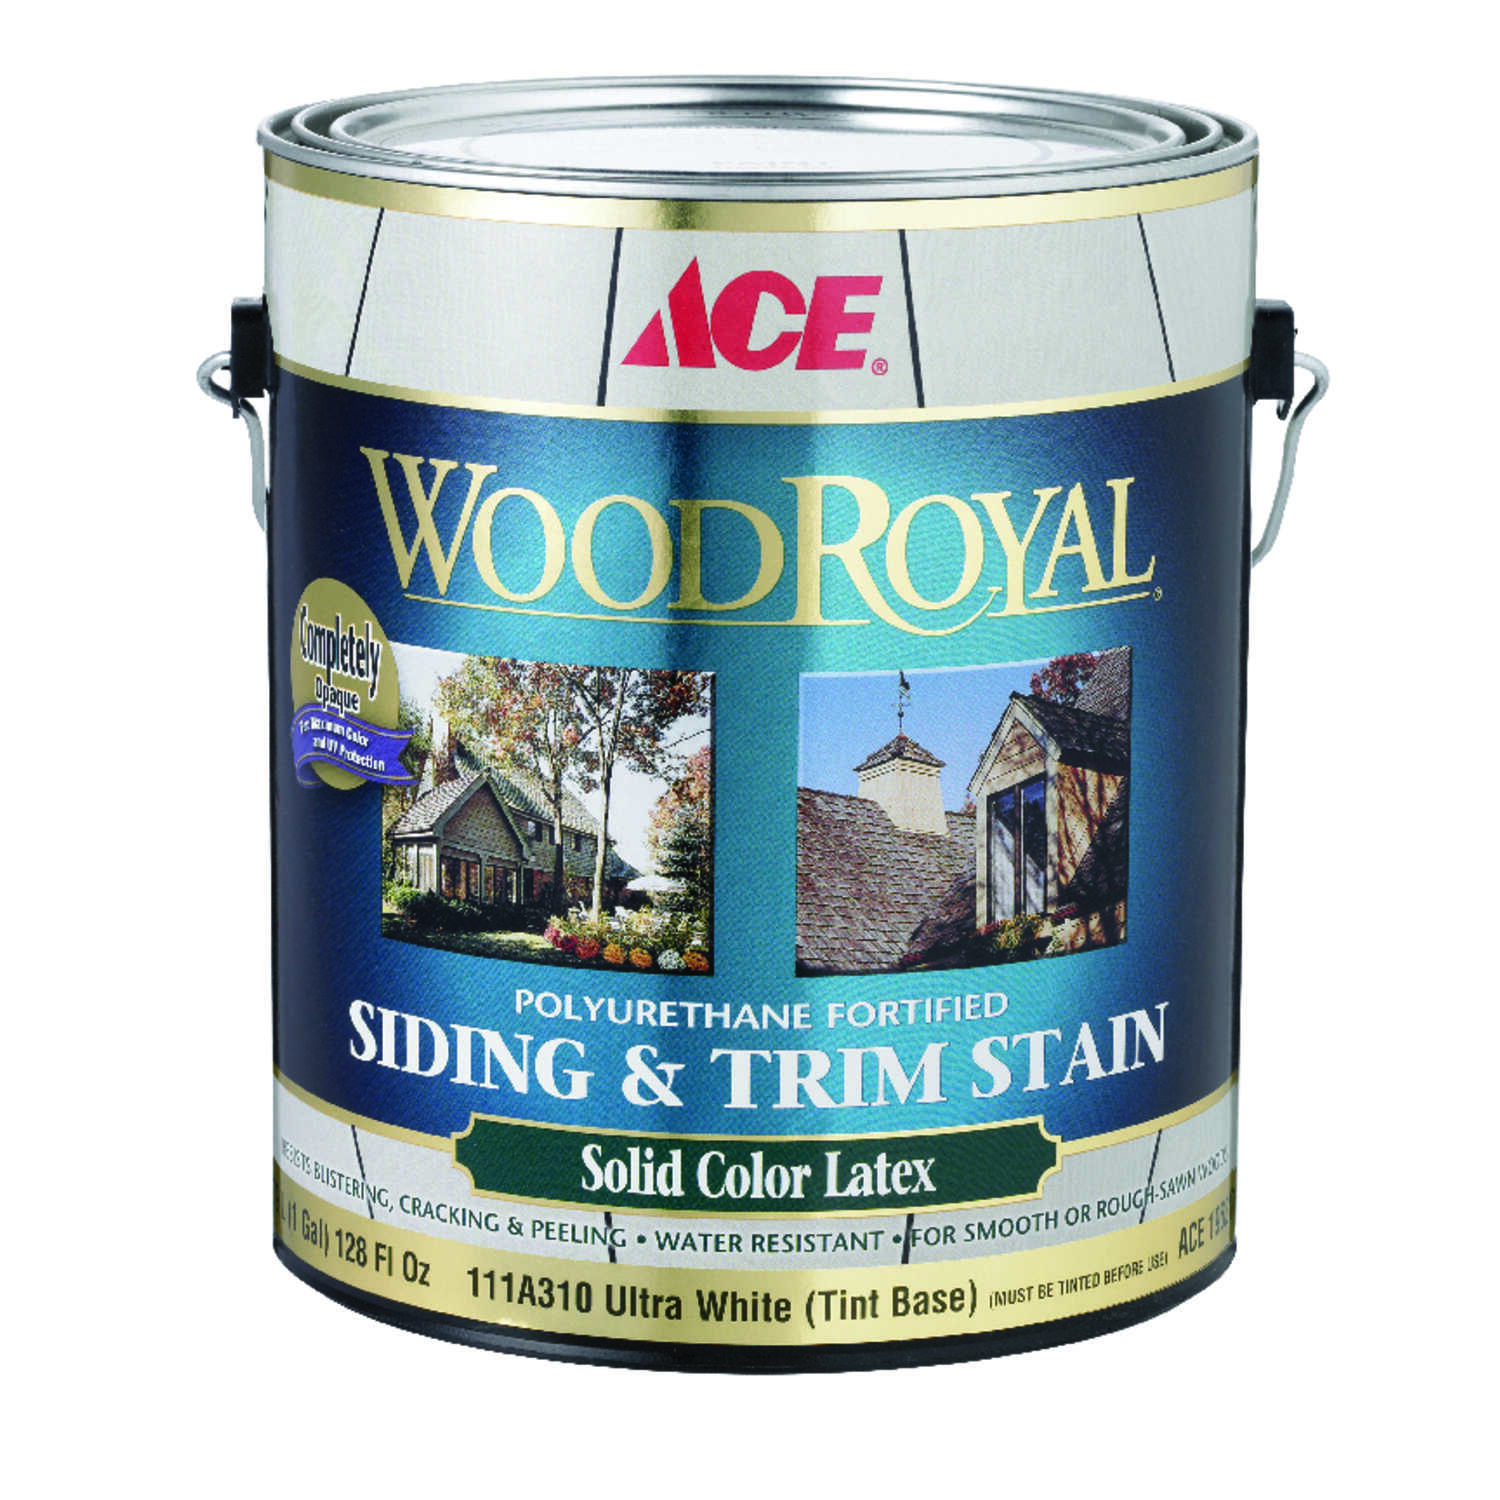 Ace  Wood Royal  Solid  Tintable Flat  Ultra White Base  Tint Base  Acrylic Latex  Siding and Trim S